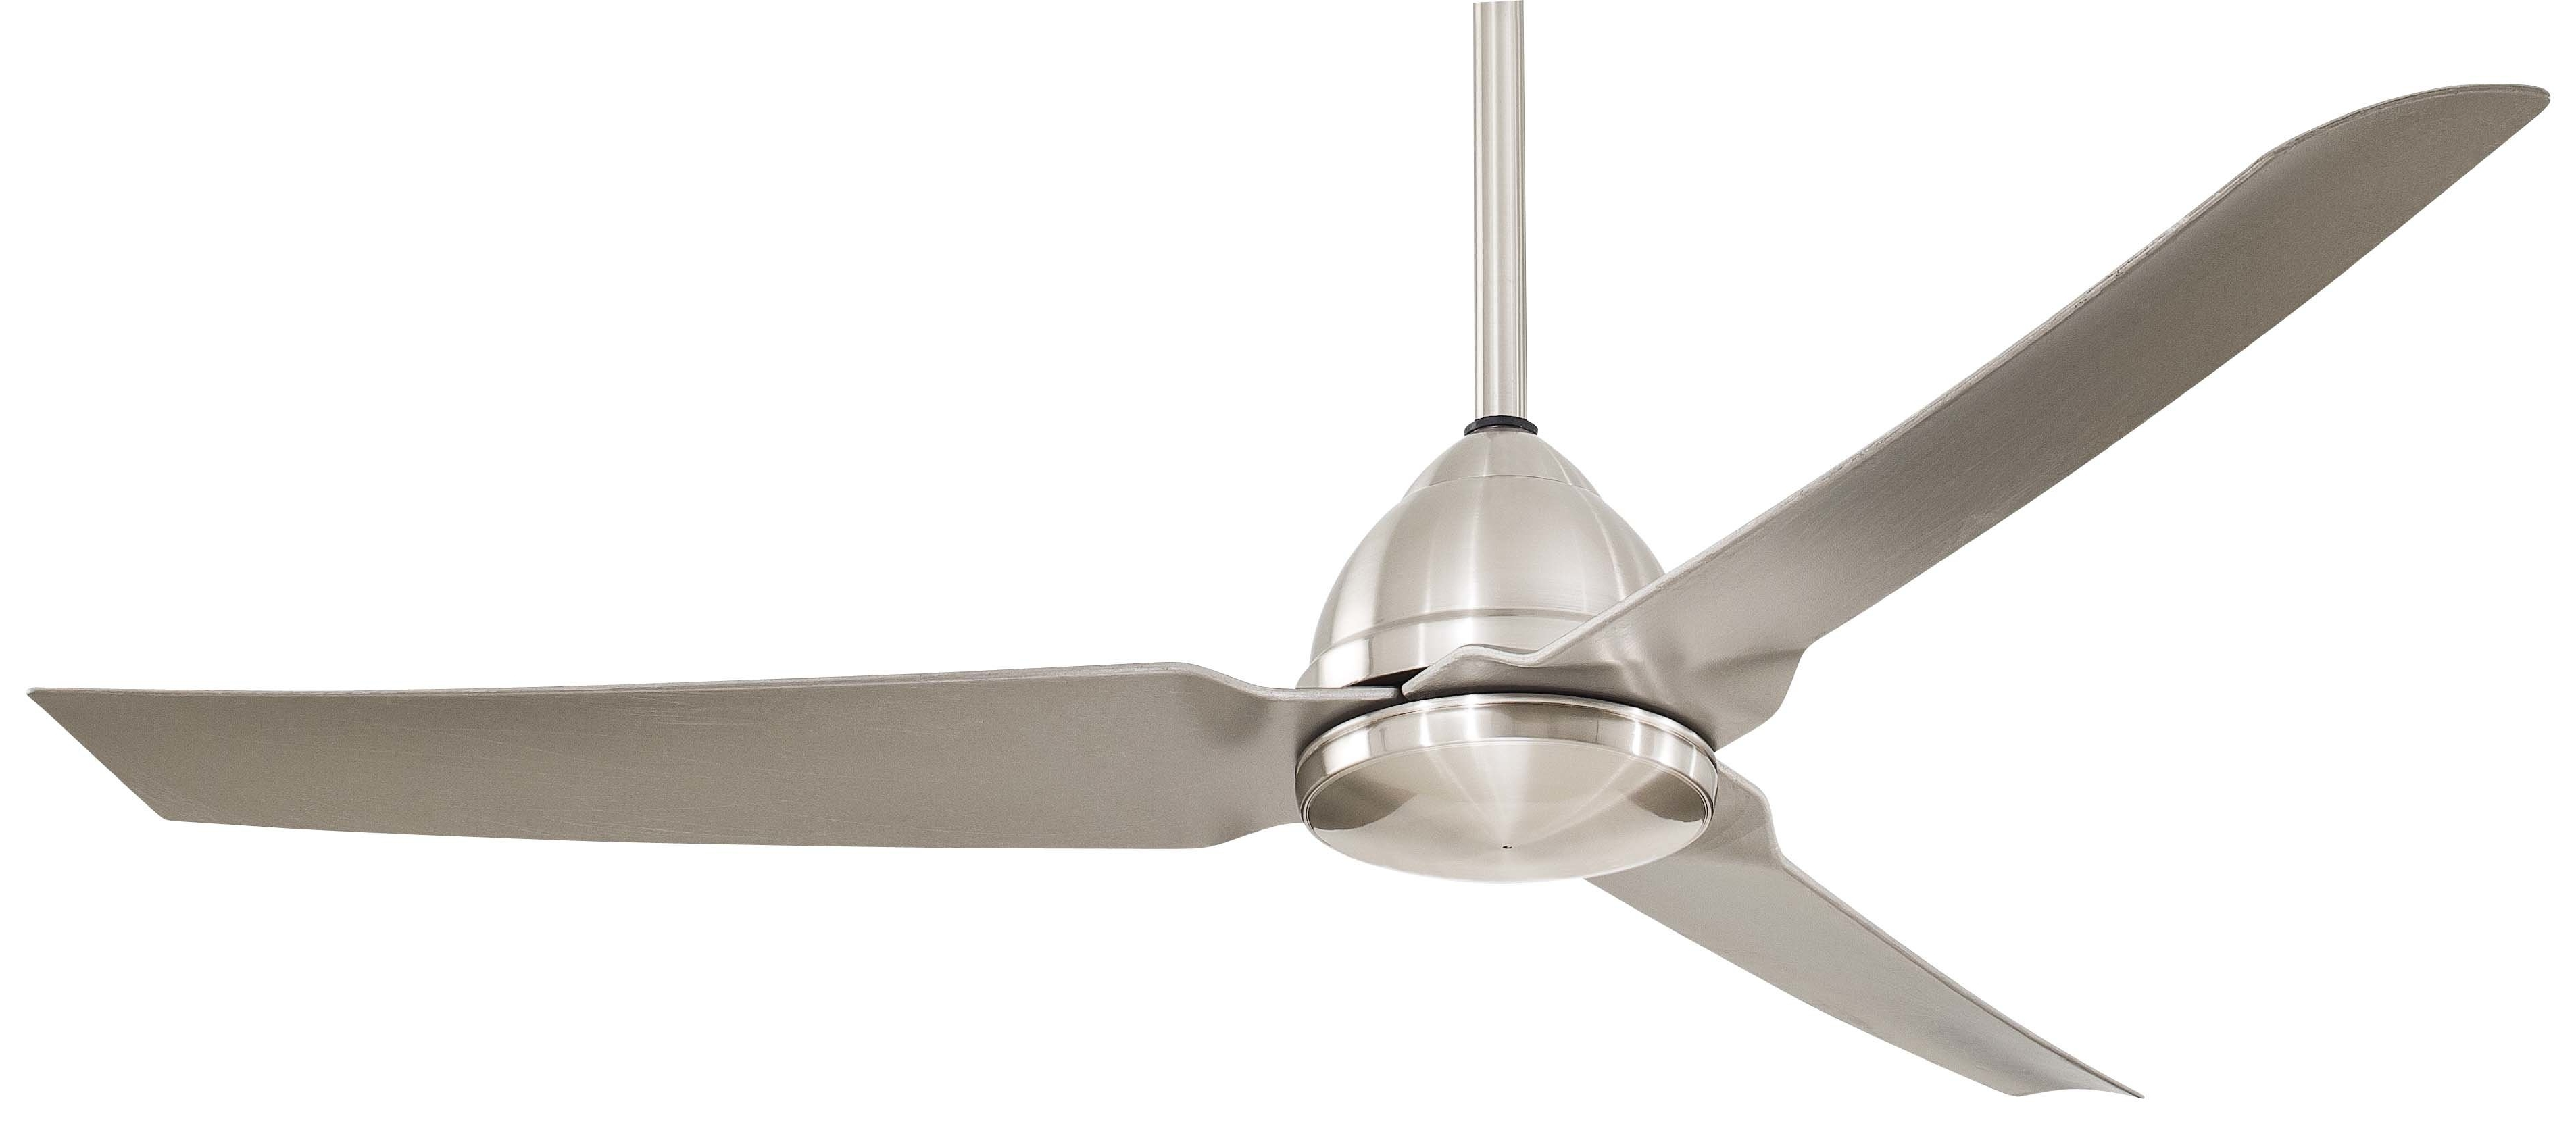 Wayfair Outdoor Ceiling Fans Within Most Recent Outdoor Ceiling Fans You'll Love (View 13 of 20)